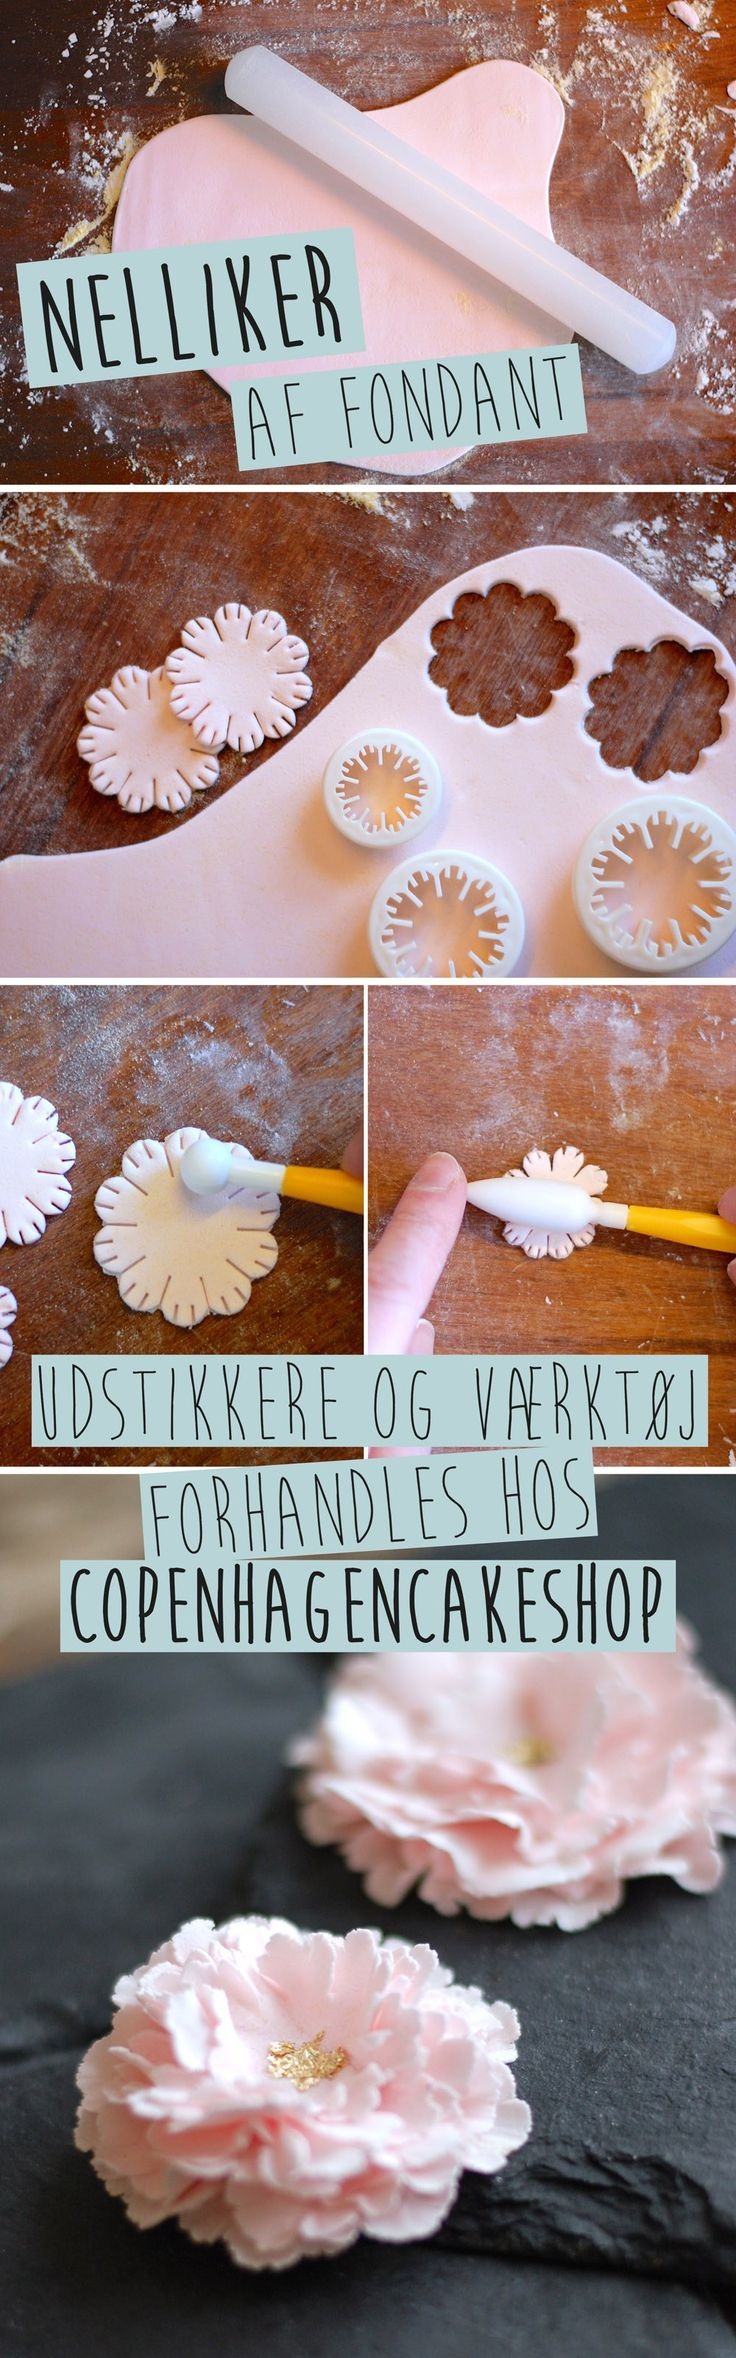 Copenhagencakes Fondant Flowers tutorial                                                                                                                                                                                 More